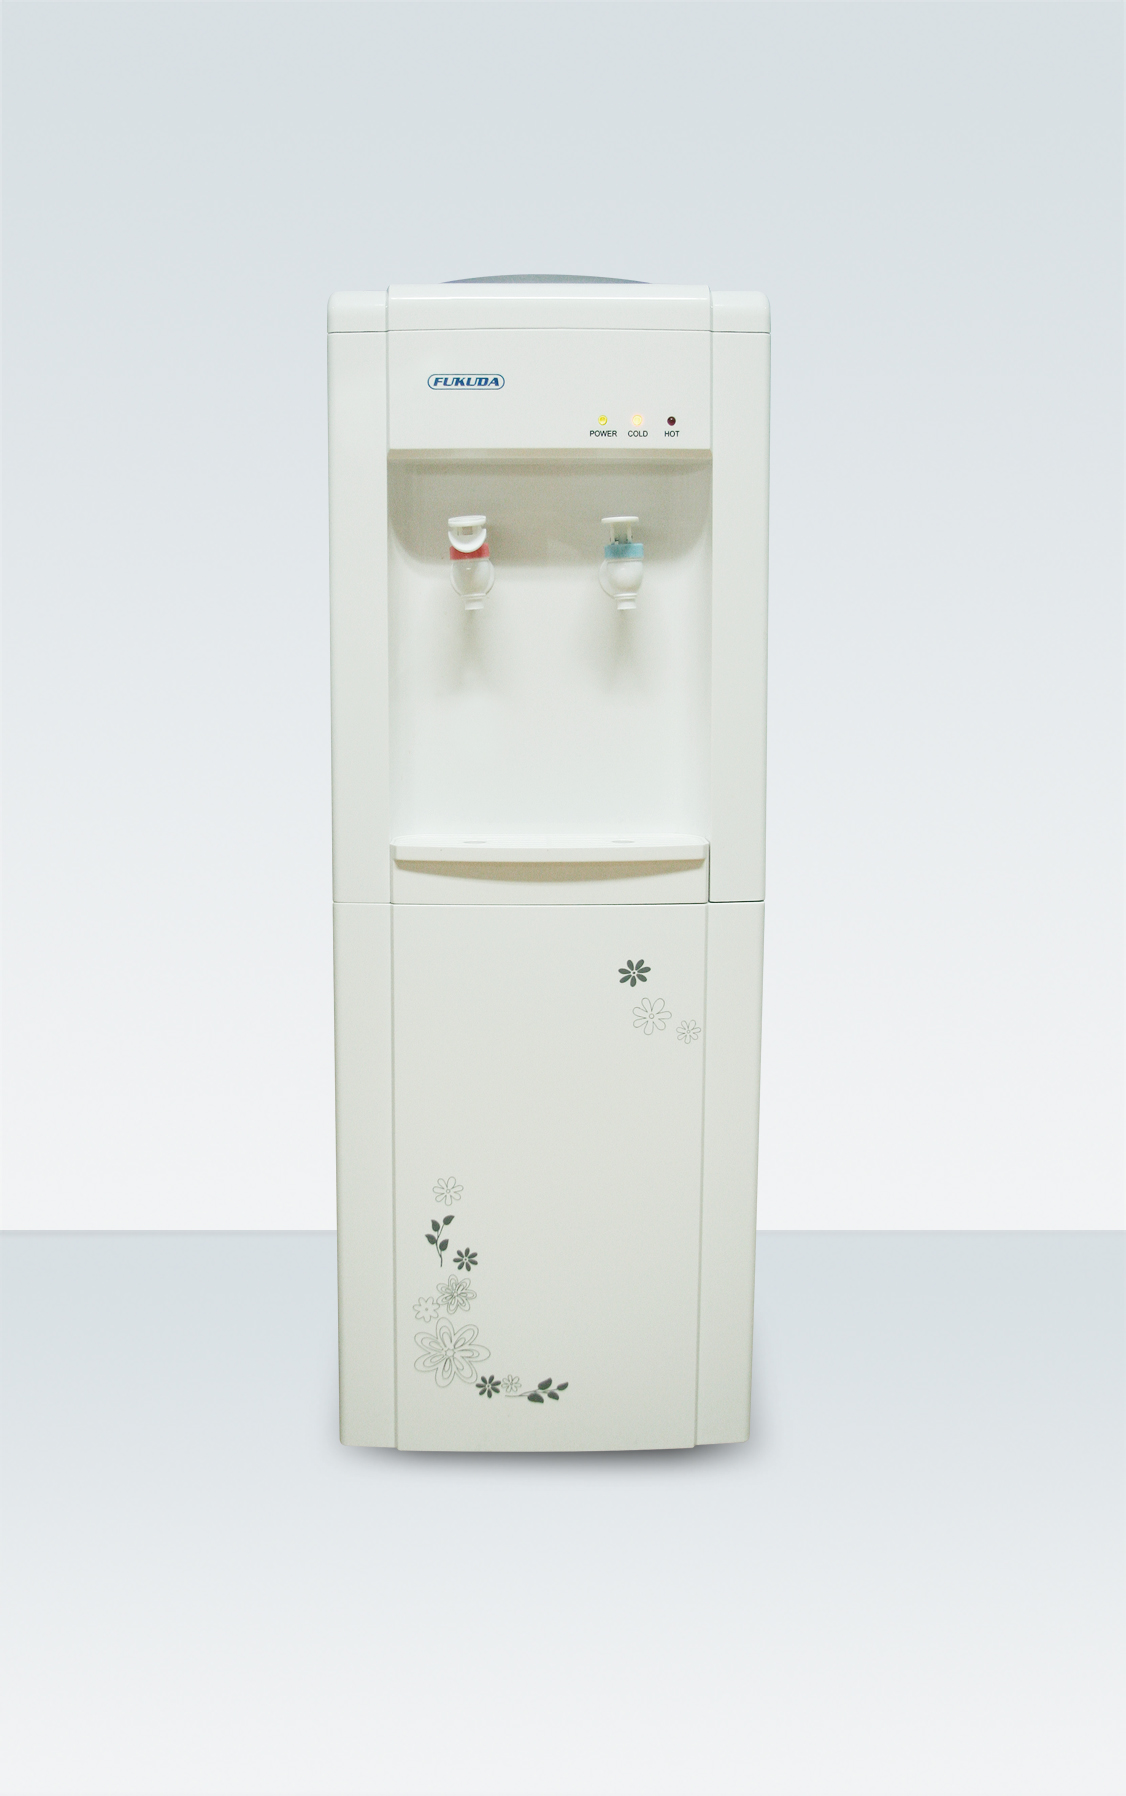 HOT & COLD STAND TYPE WATER DISPENSER